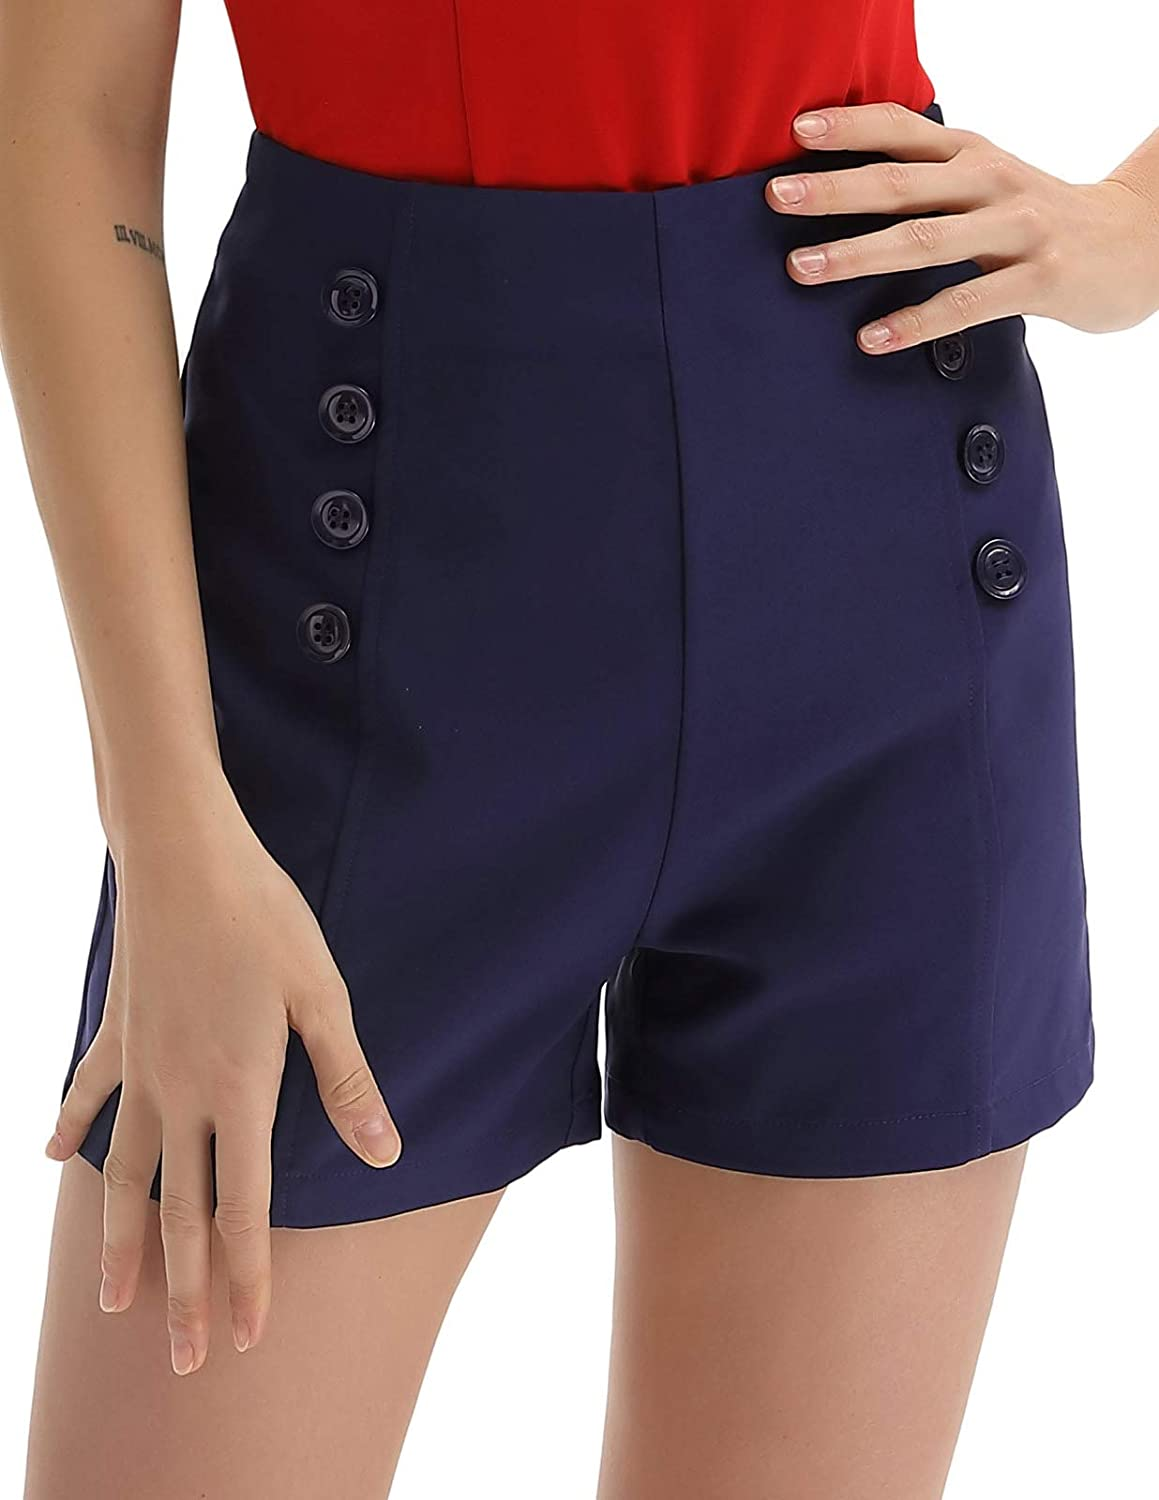 1960s Style Clothing & 60s Fashion Belle Poque Women High Waist Stretch Shorts Vintage Button Sailor Shorts BP849 $20.99 AT vintagedancer.com